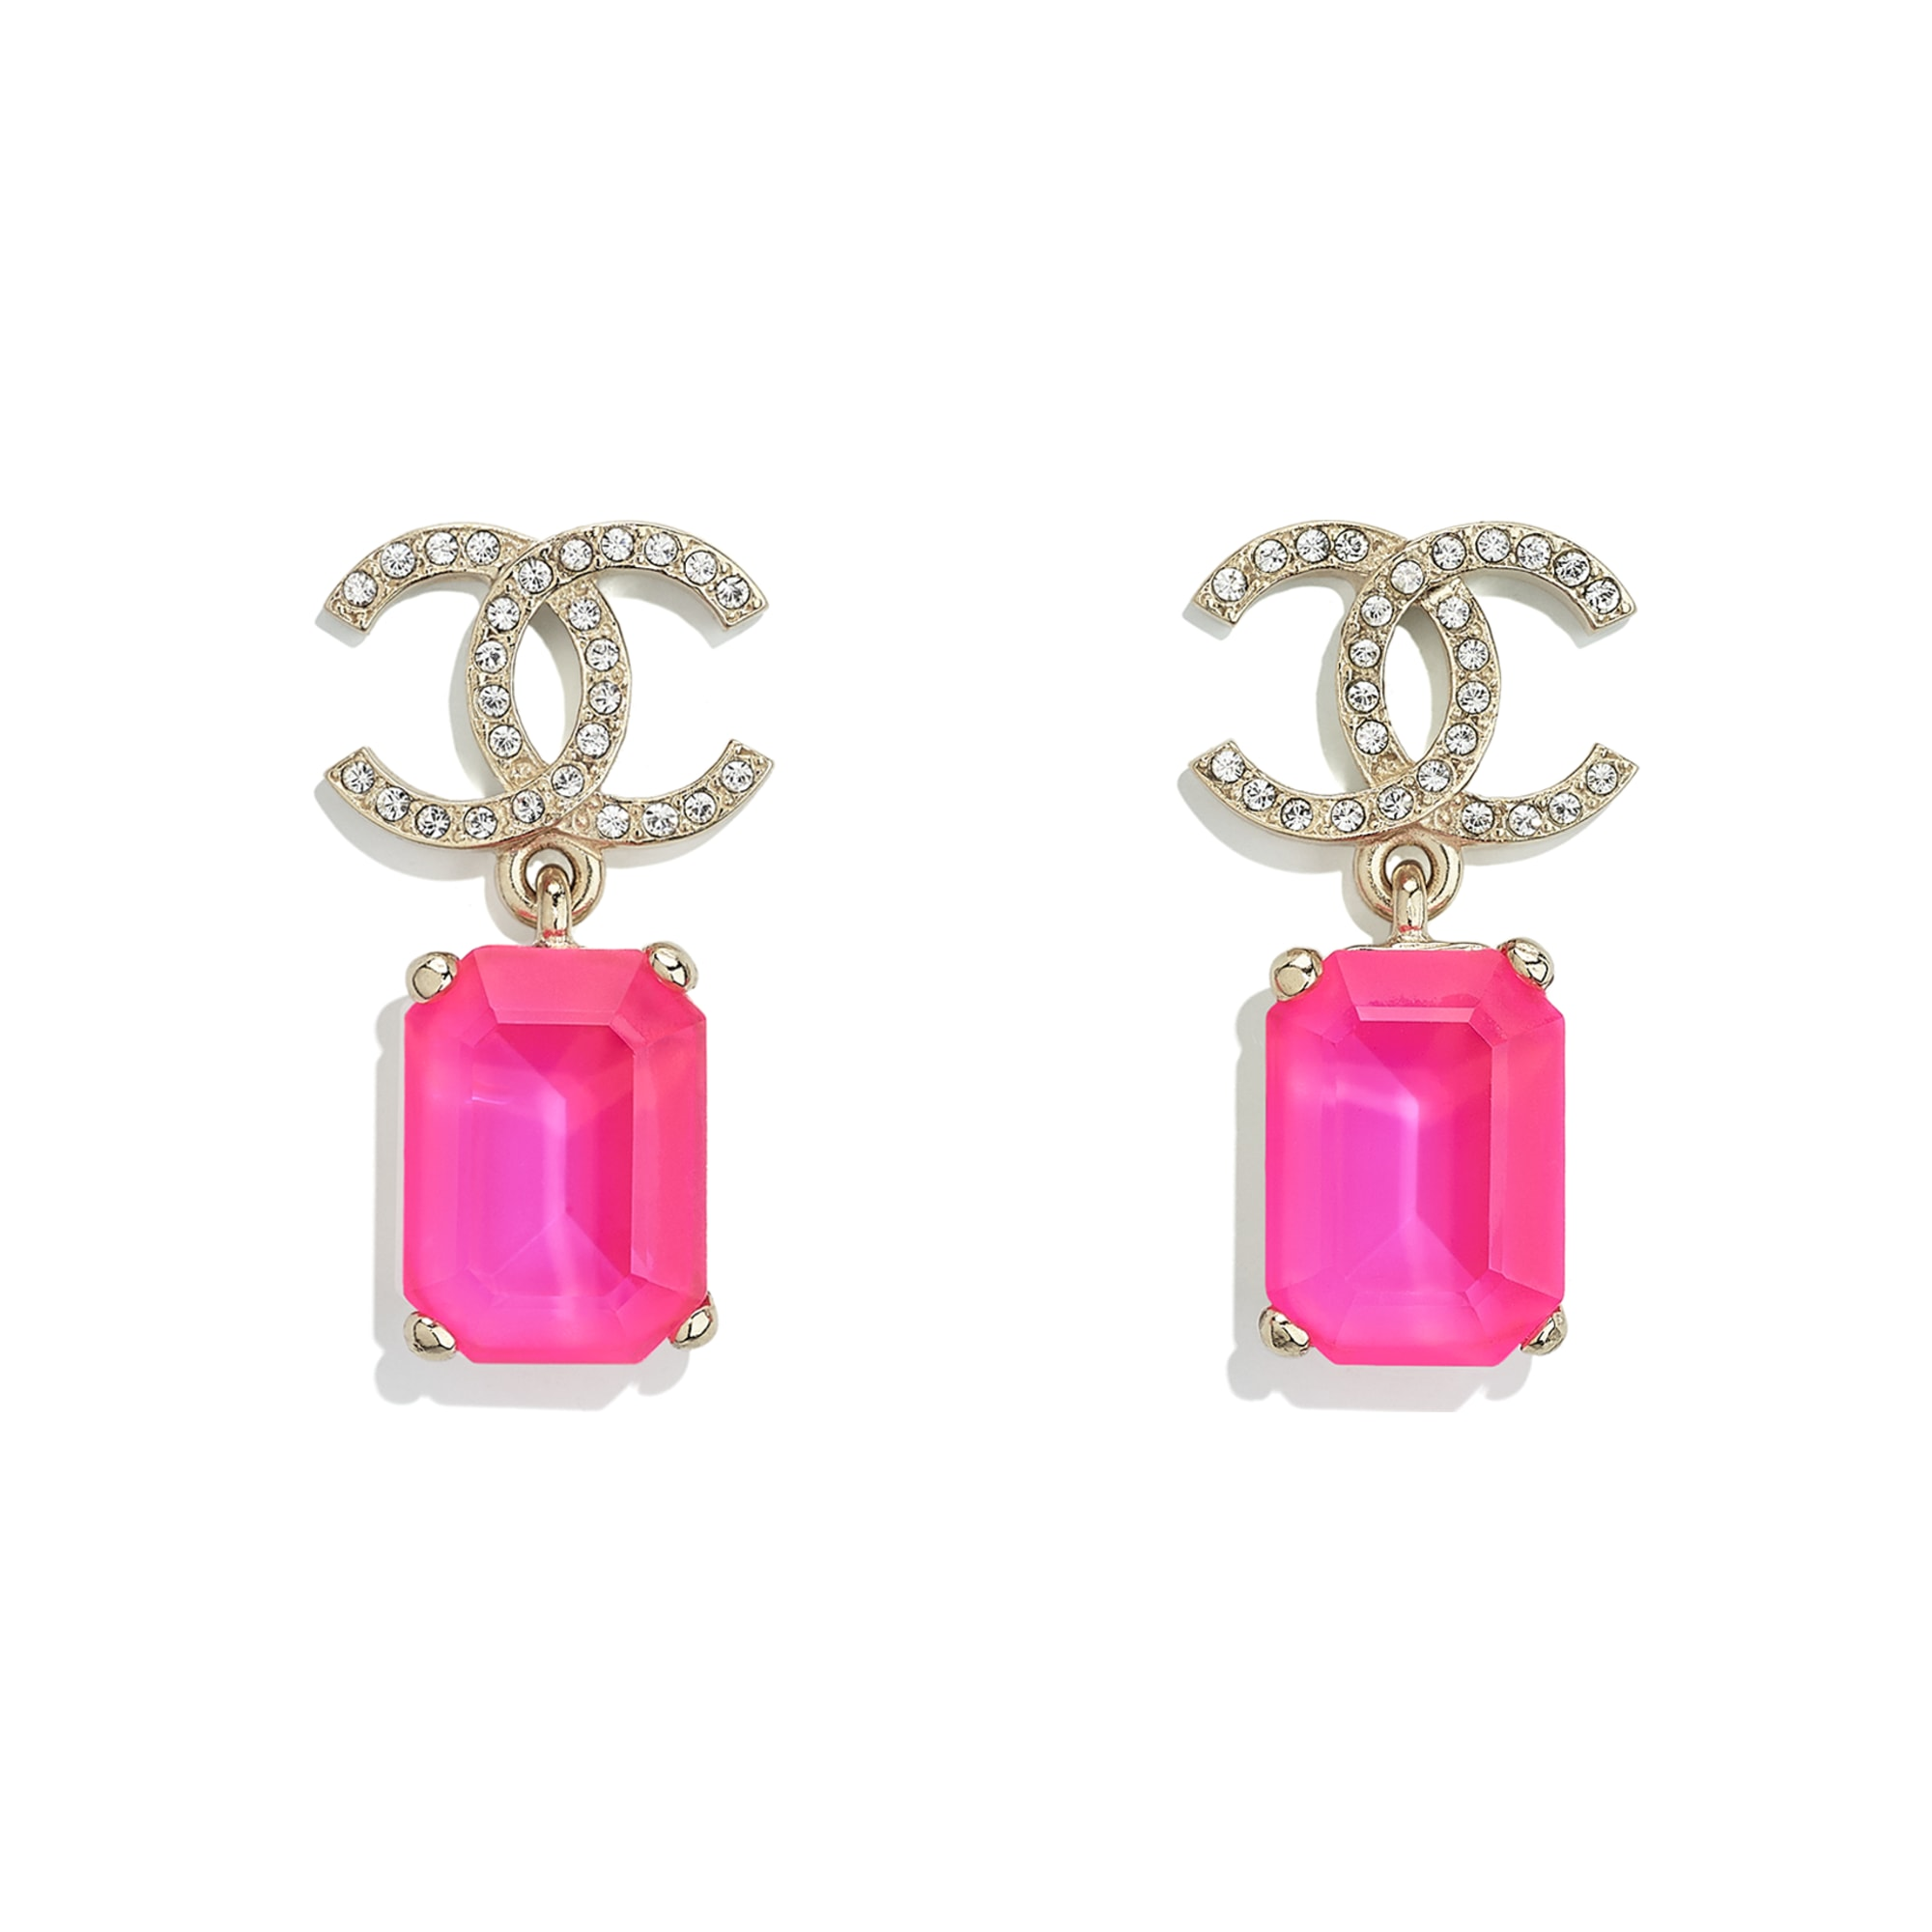 Earrings - Gold, Pink & Crystal - Metal & Diamantés - CHANEL - Default view - see standard sized version